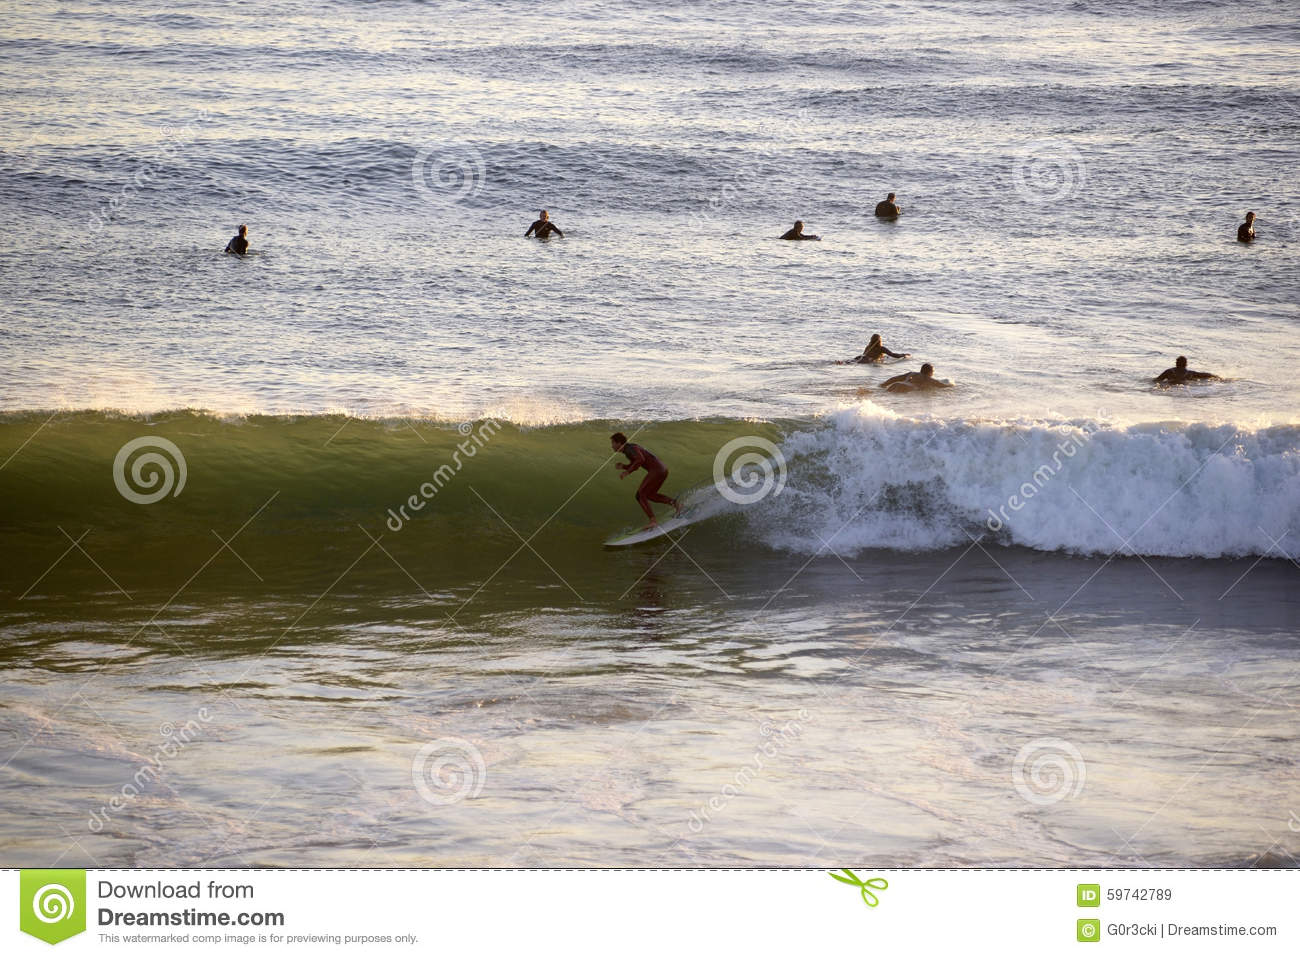 Picture of surfers entering the water.